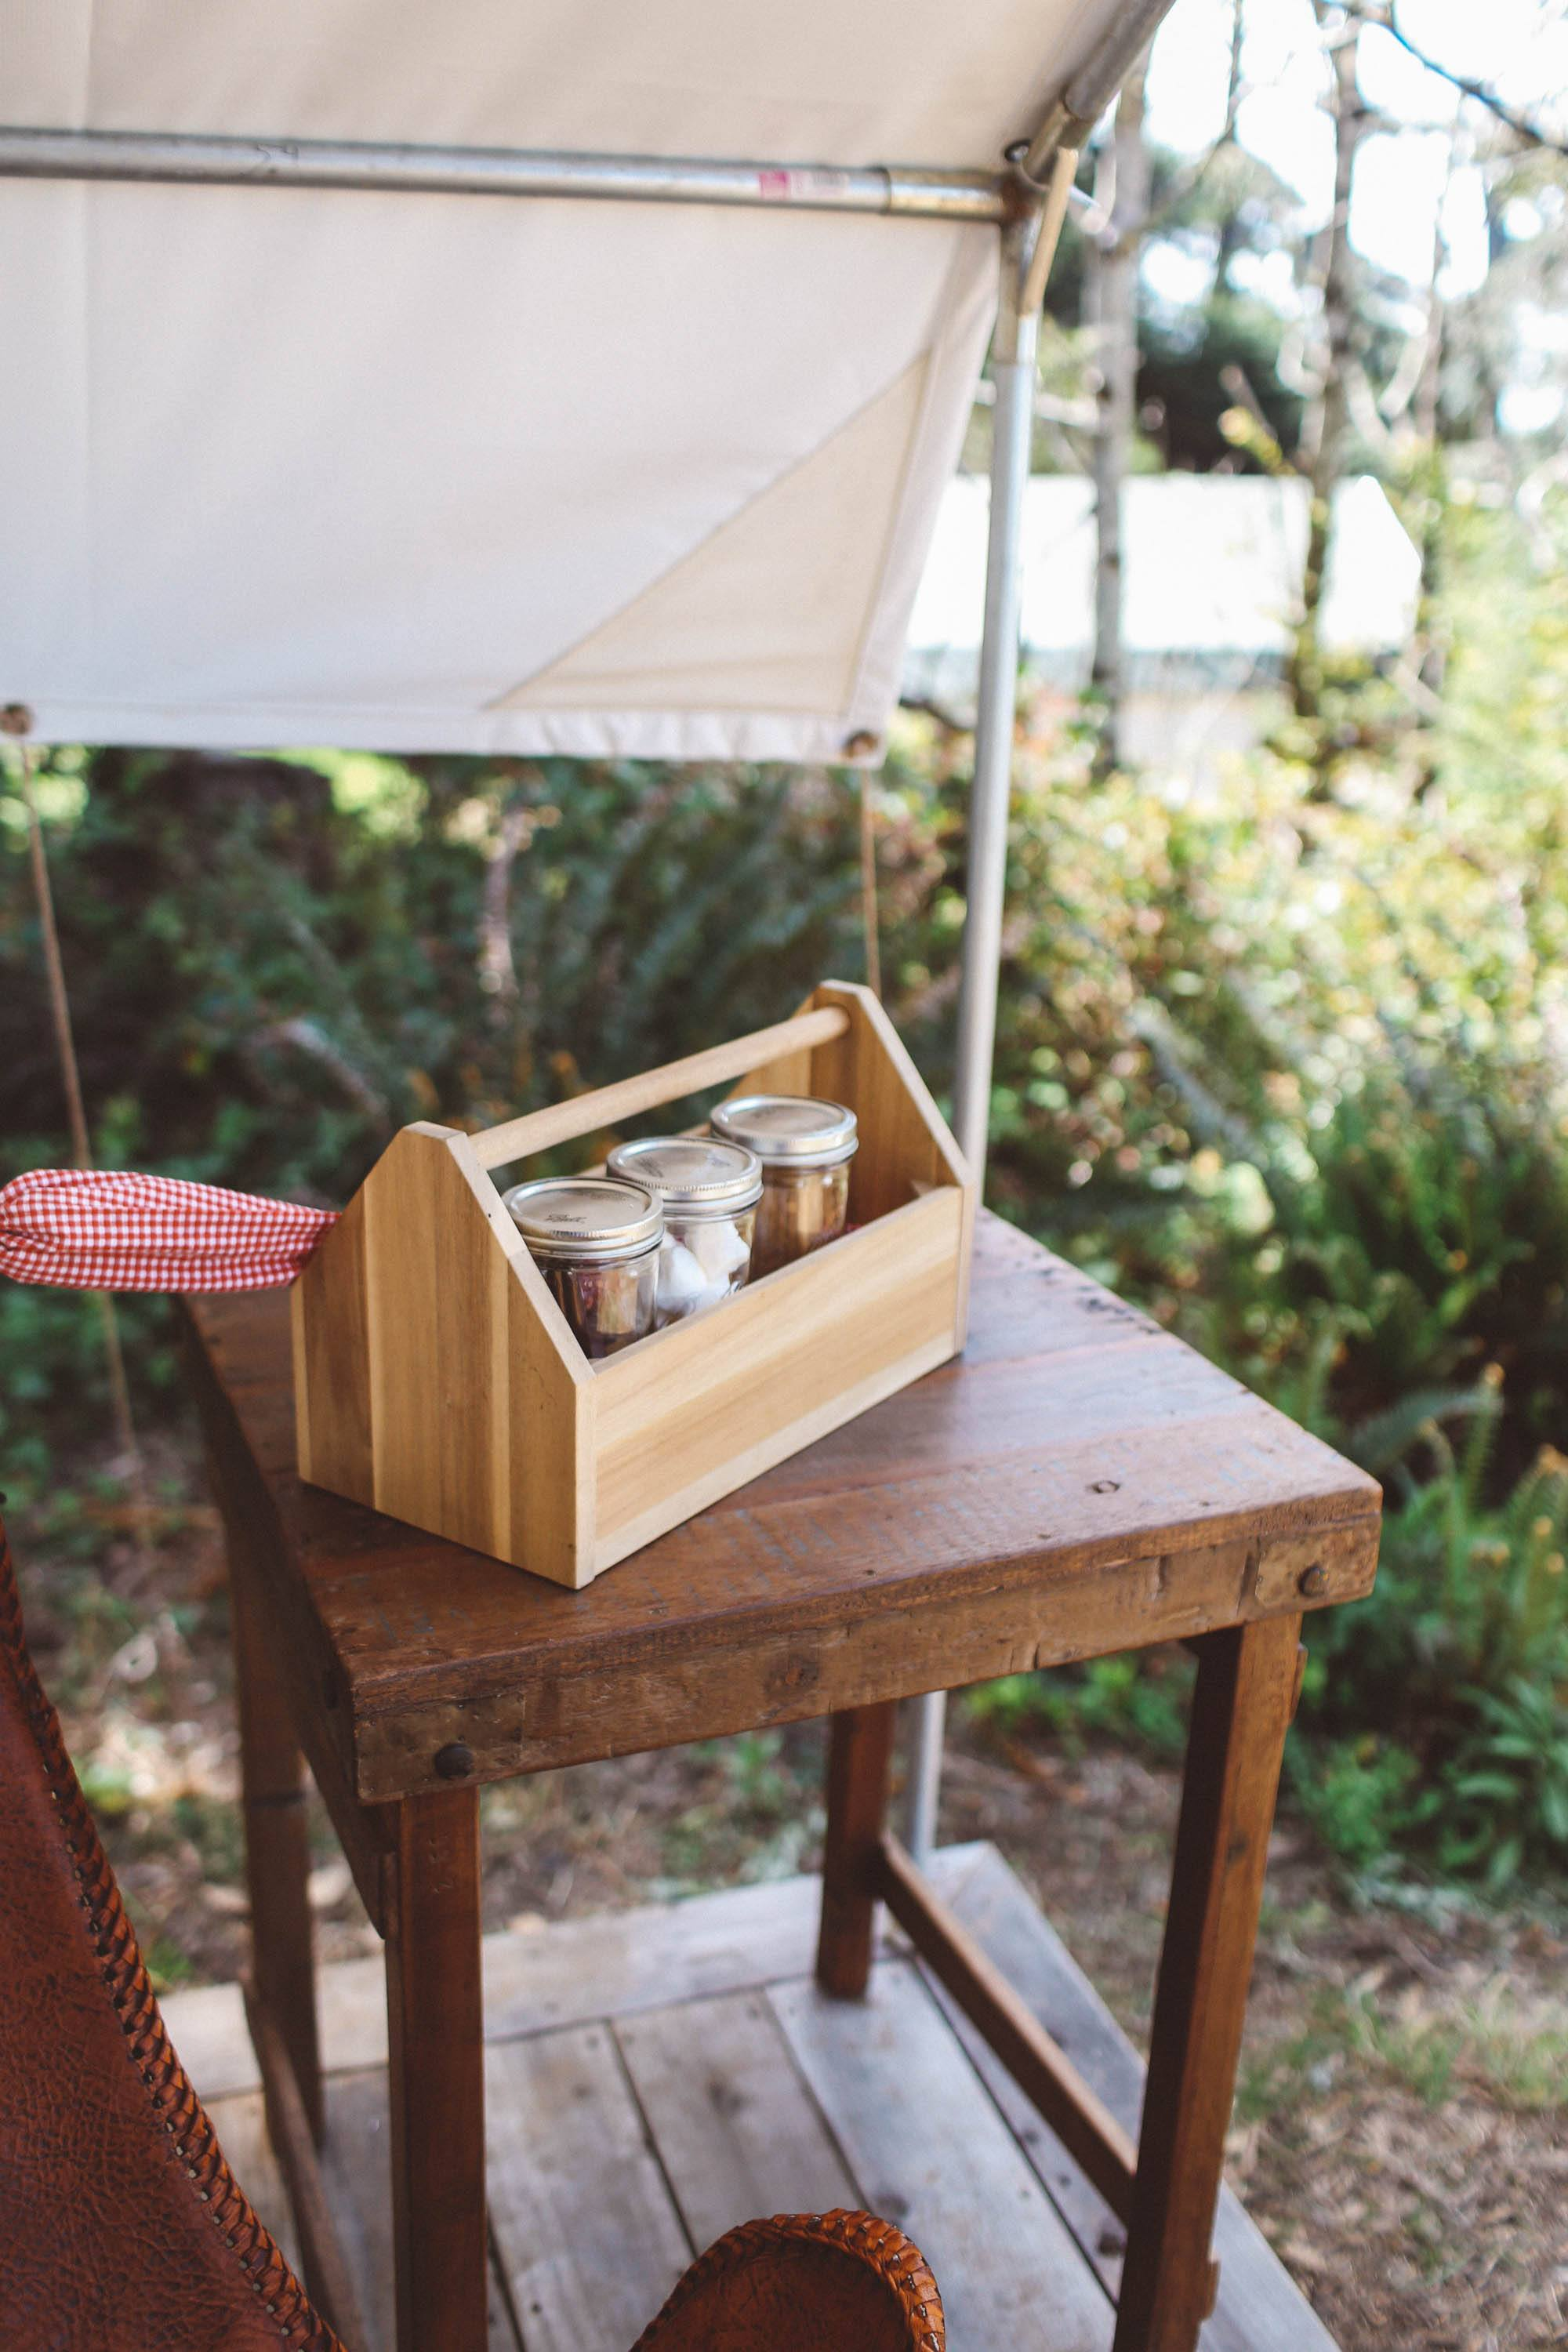 Wooden box with jars on a table on tent porch